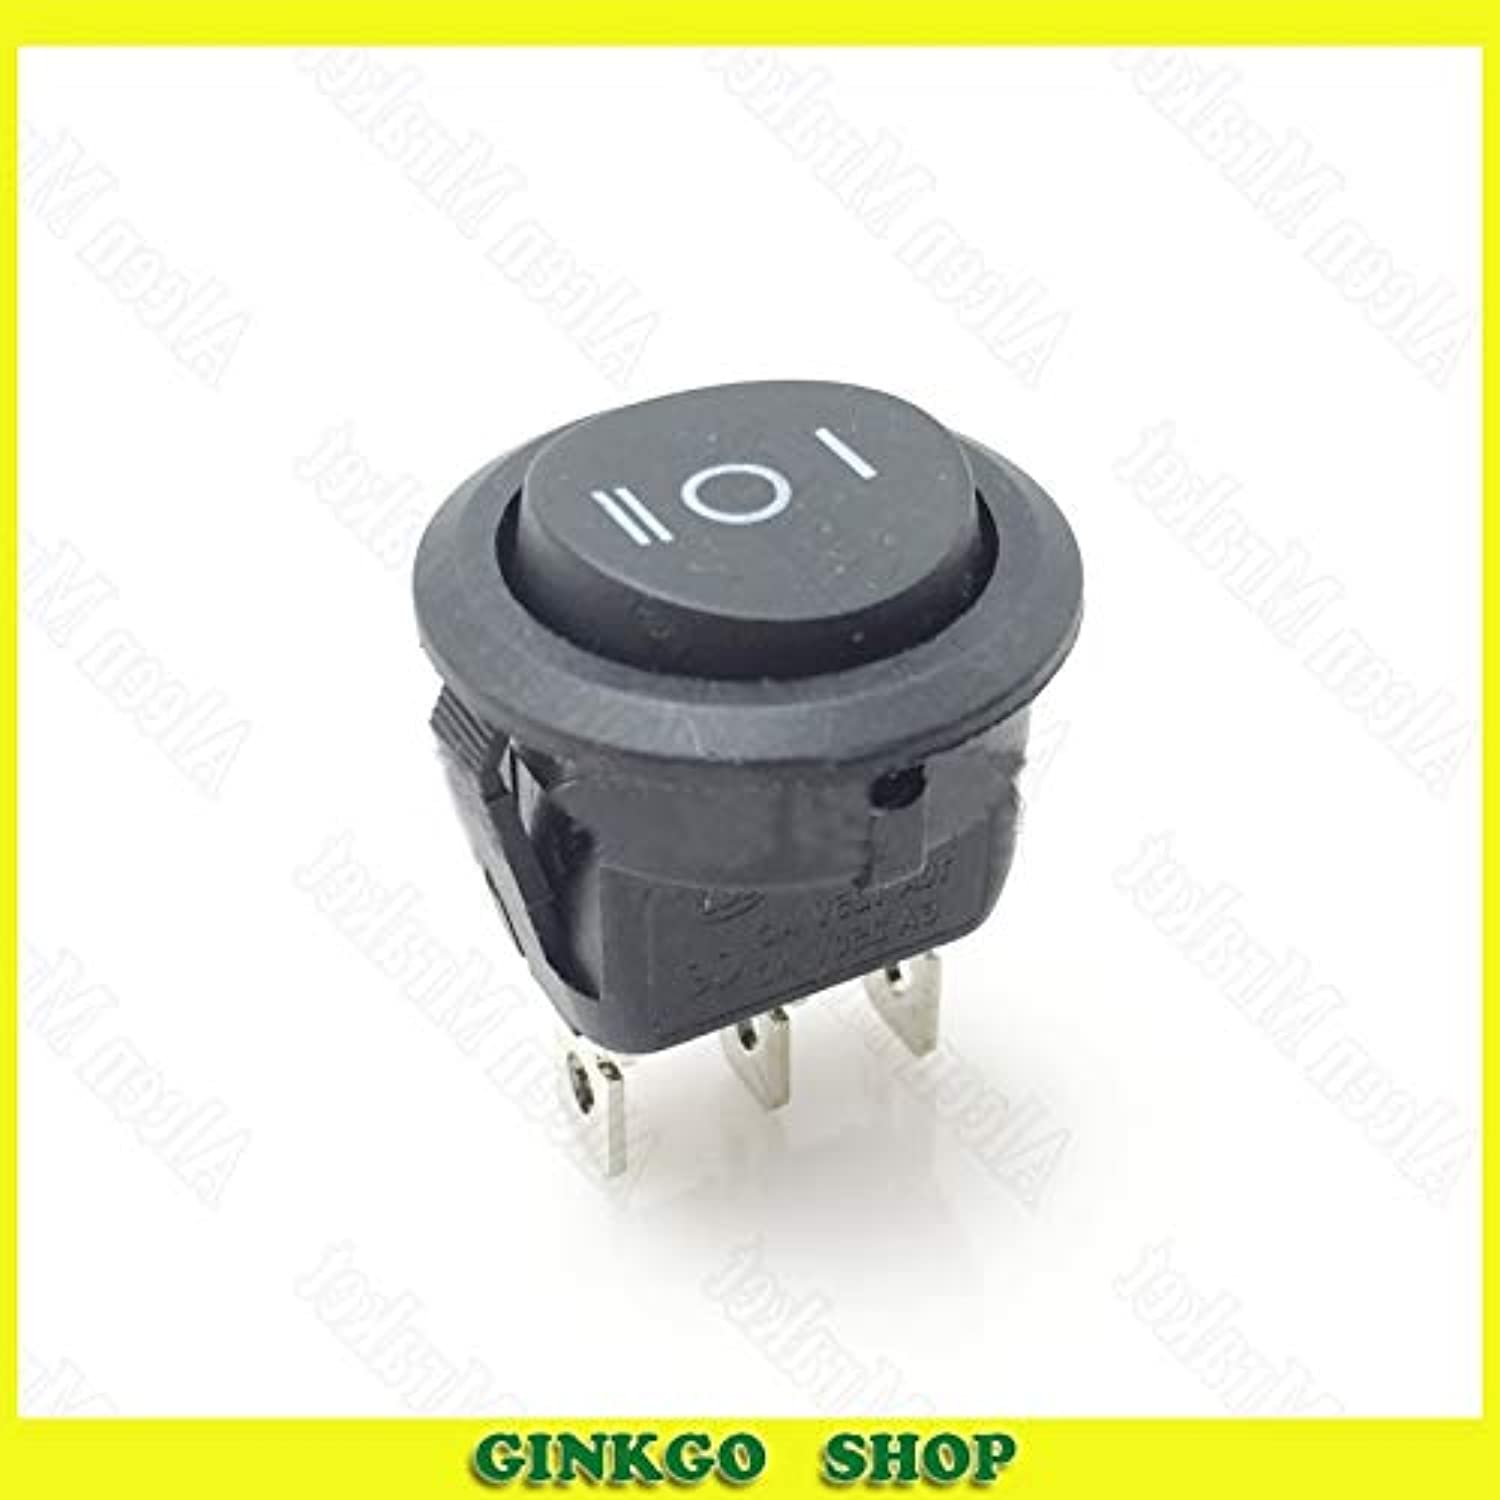 300pcs lot KCD12 Round Rocker Power Switch Black 3File 3Foot Up Round Down Square 3P Switch